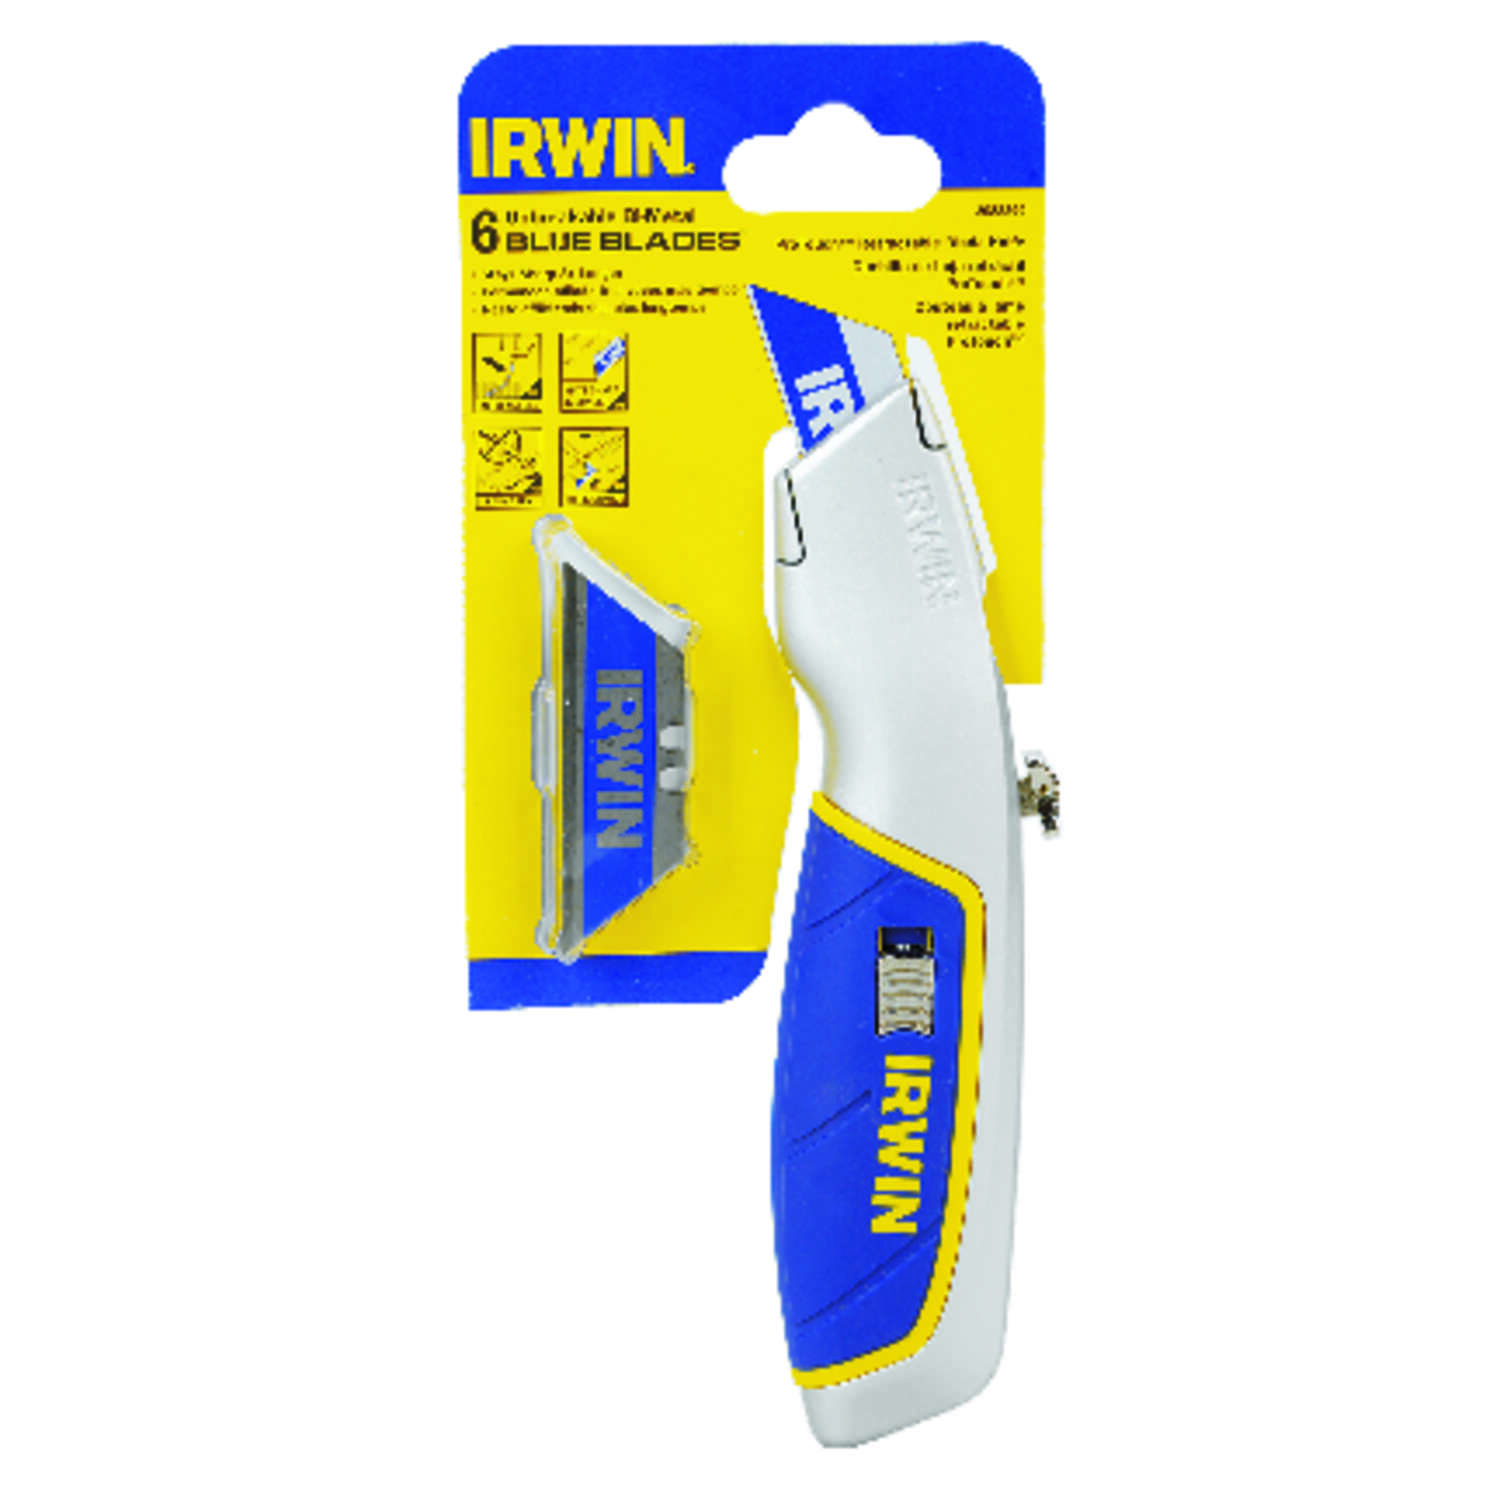 Irwin  ProTouch  7-9/32 in. Retractable  Utility Knife  Blue  1 pc.